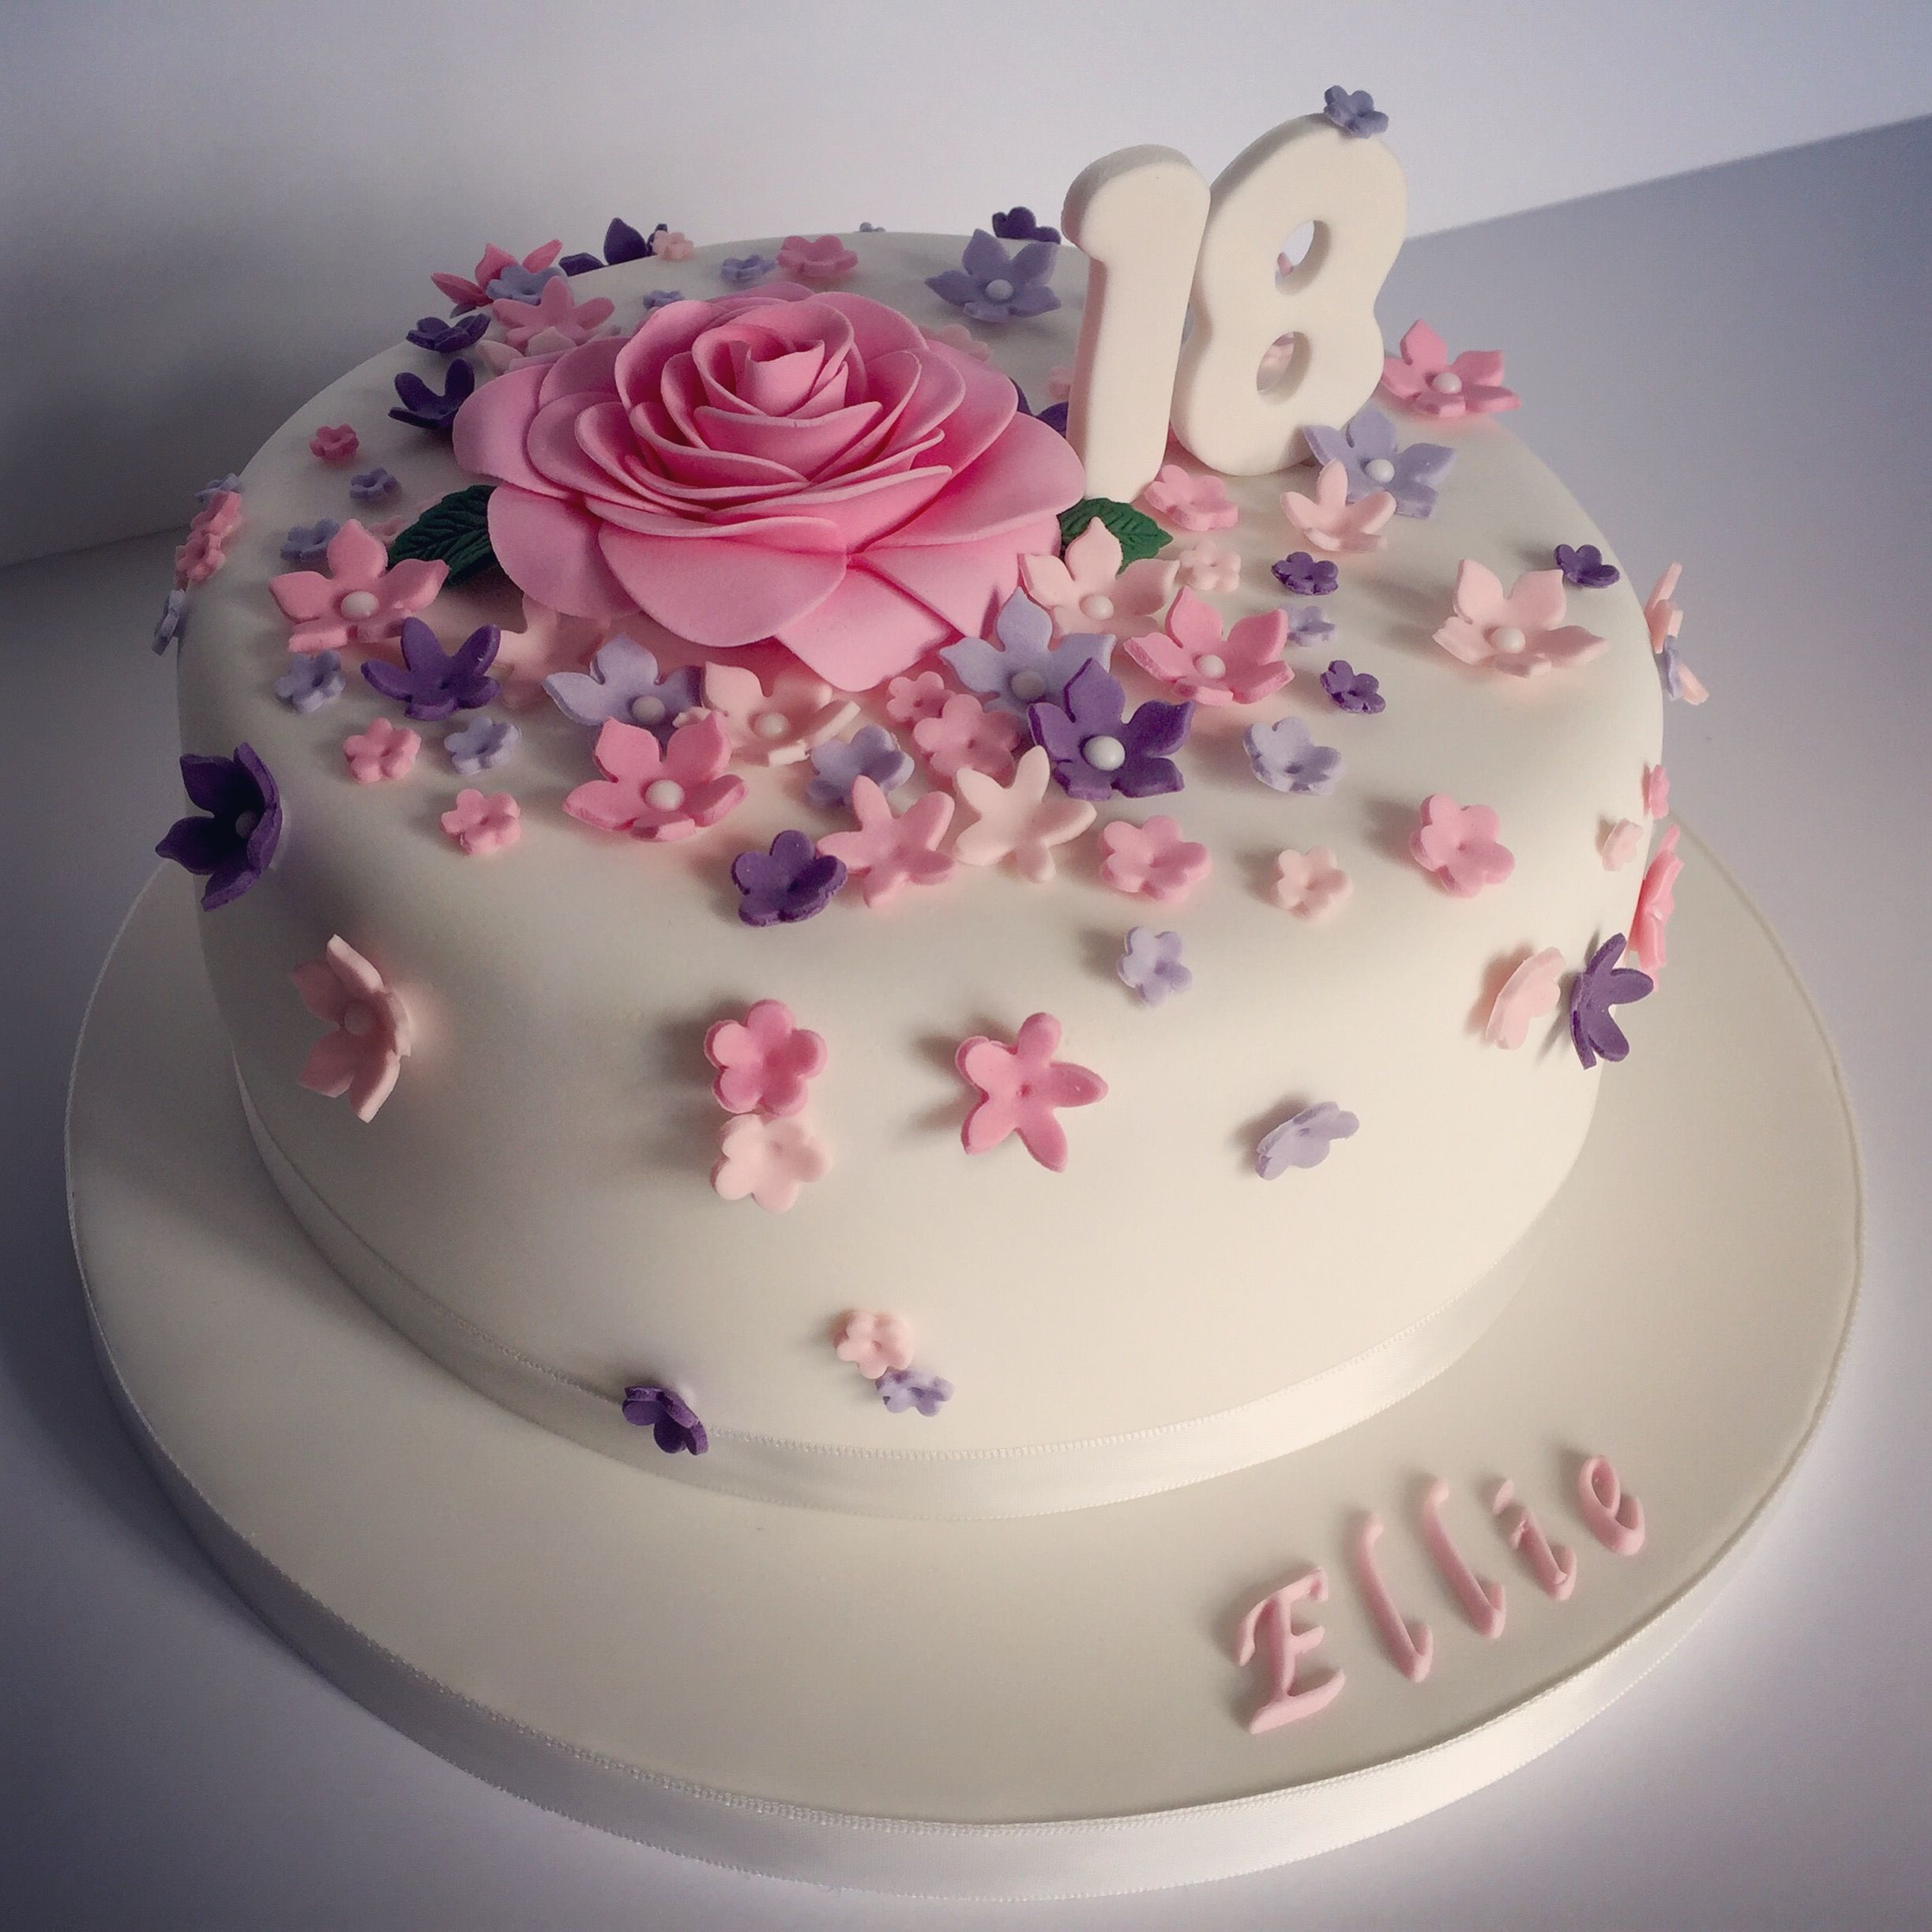 32 Inspiration Image Of Cakes For Birthdays